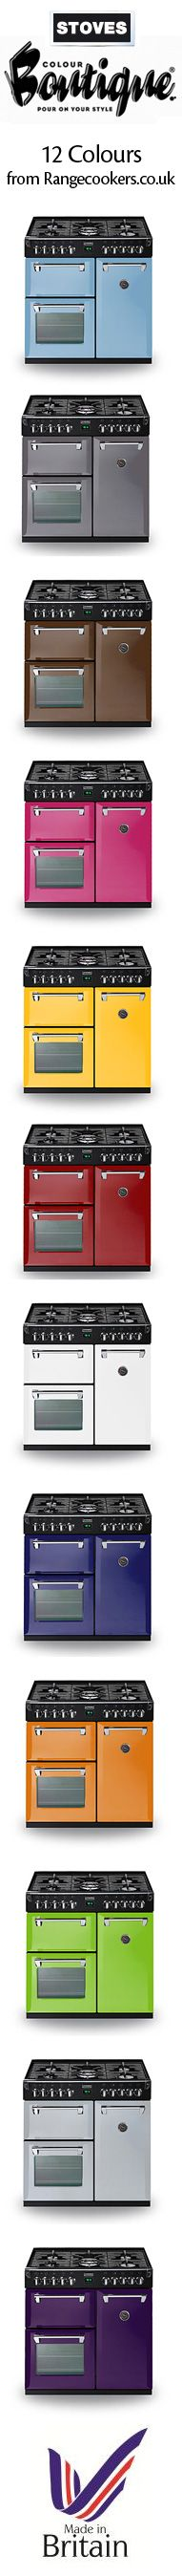 With Stoves Colour Boutique you can specify one of twelve inspiring shades which will easily match popular small kitchen appliances.